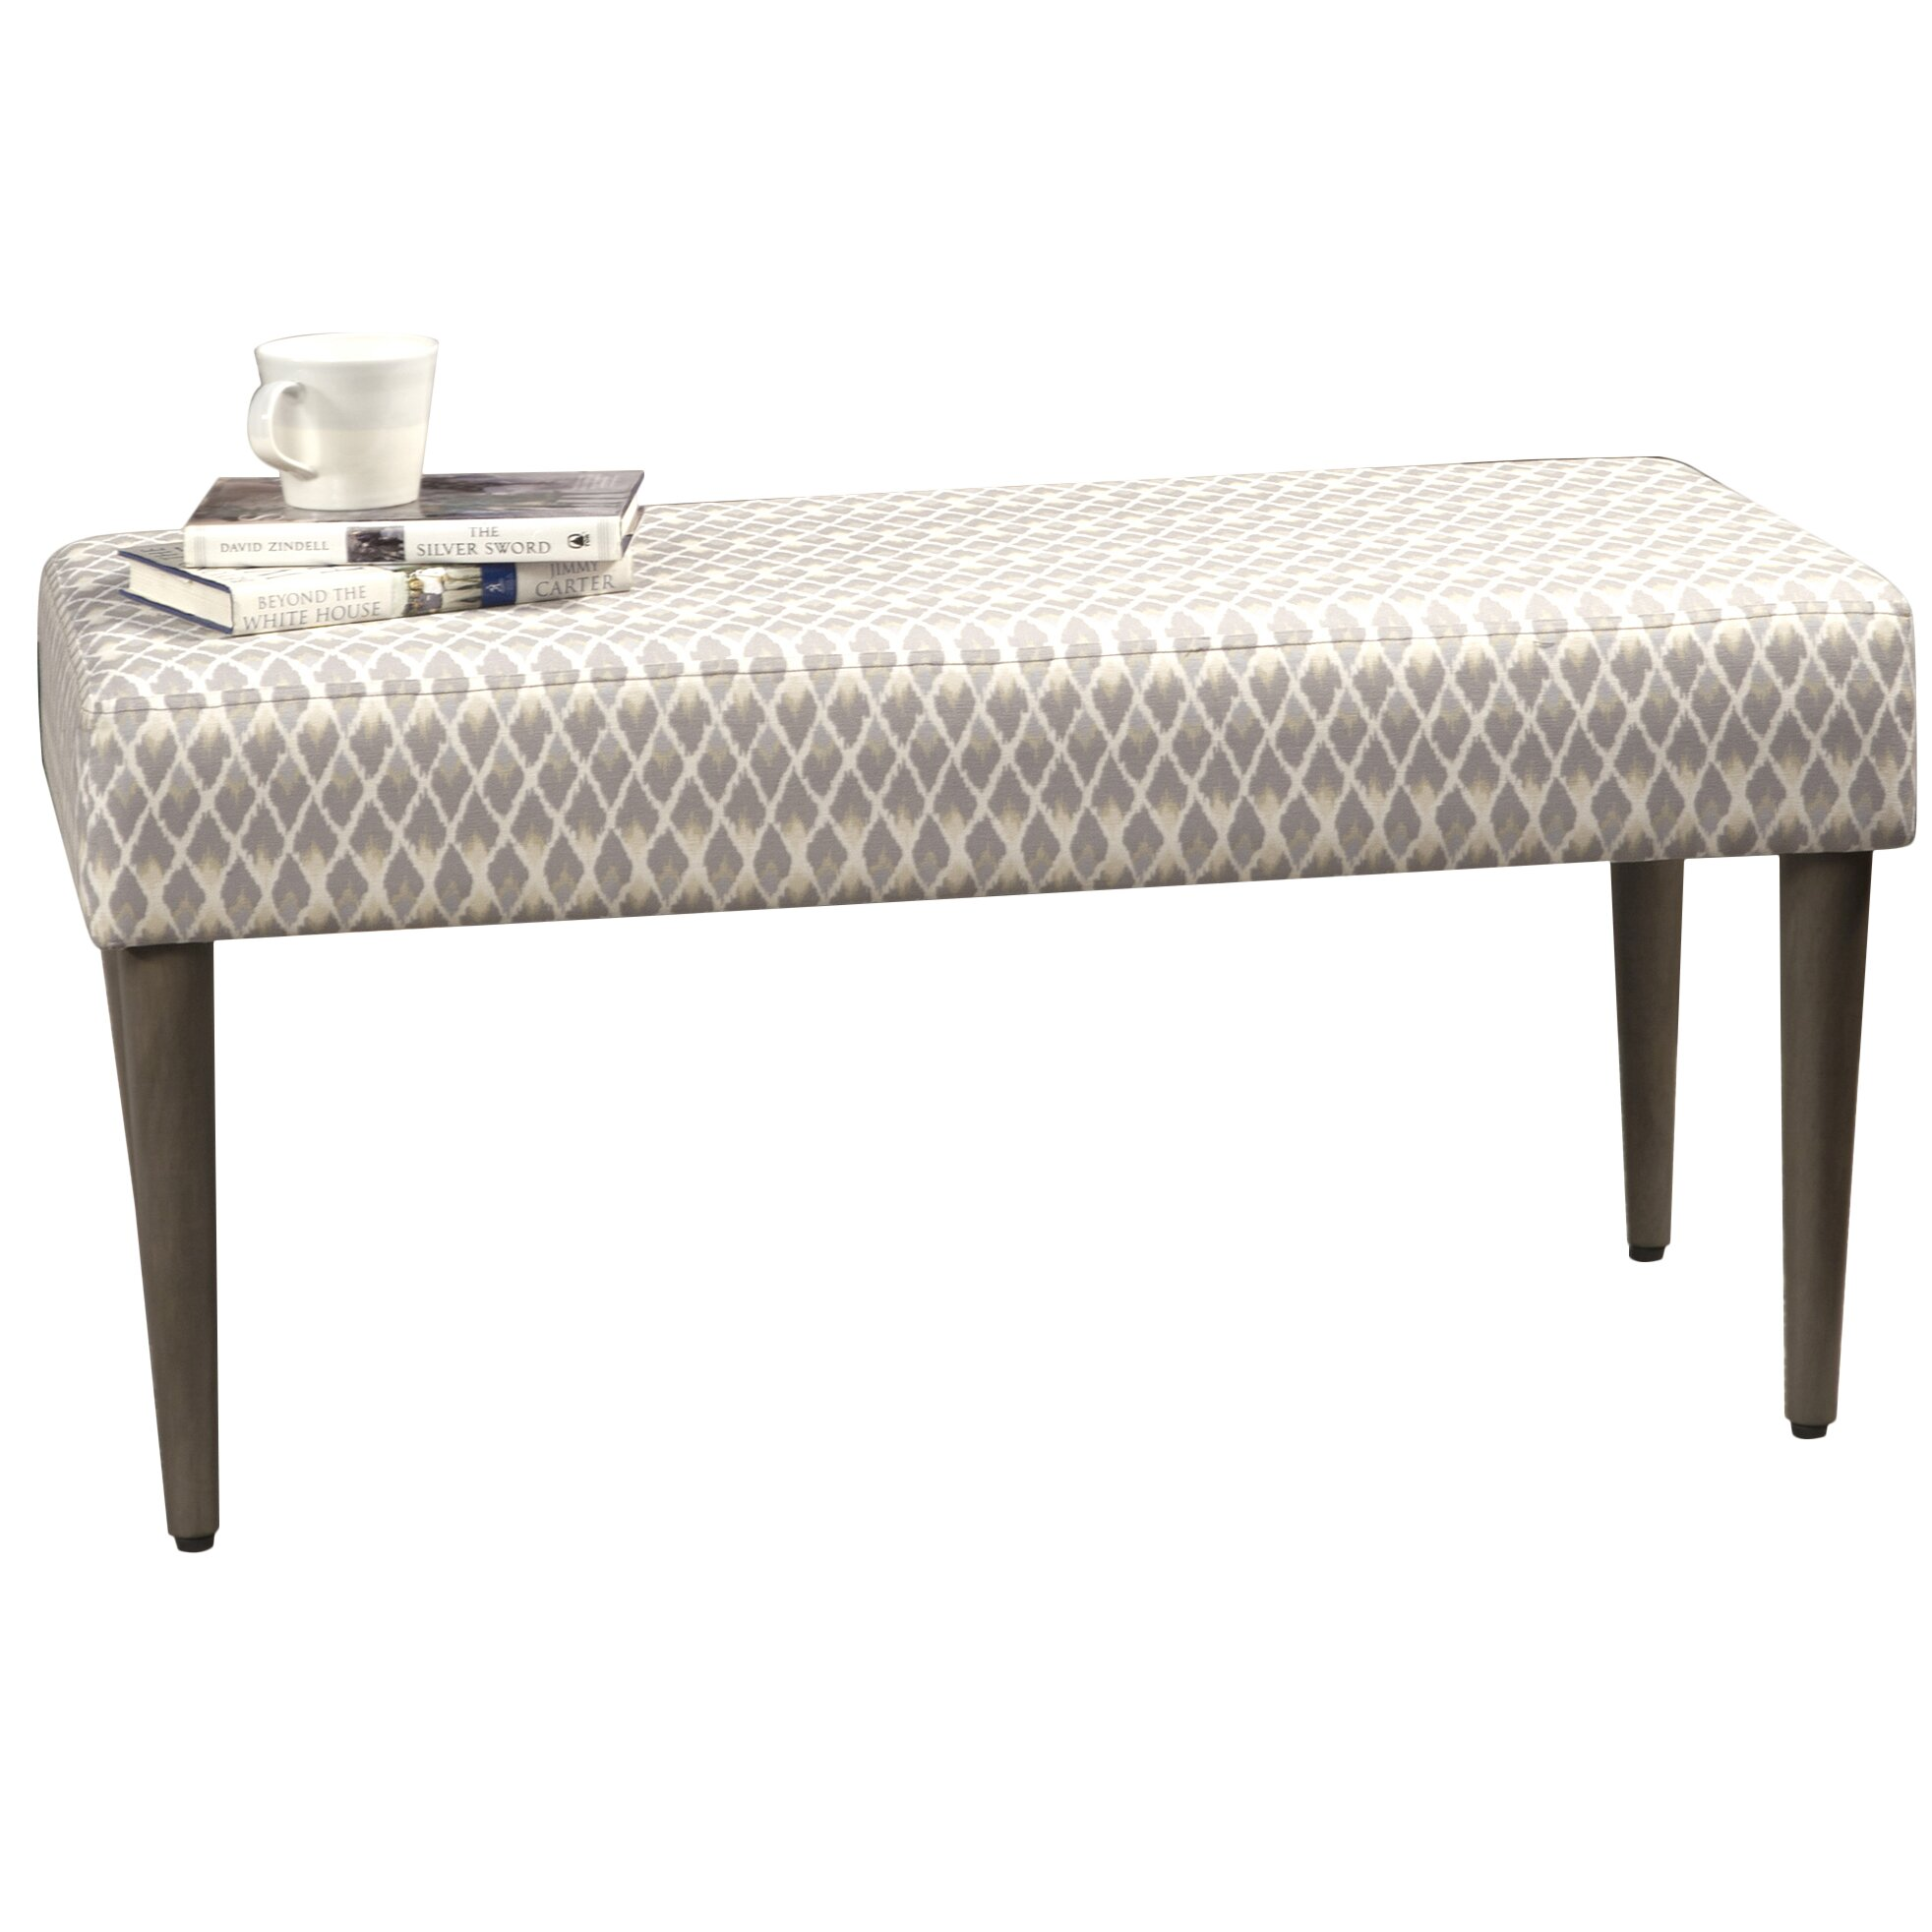 Upholstered Bedroom Bench Wayfair